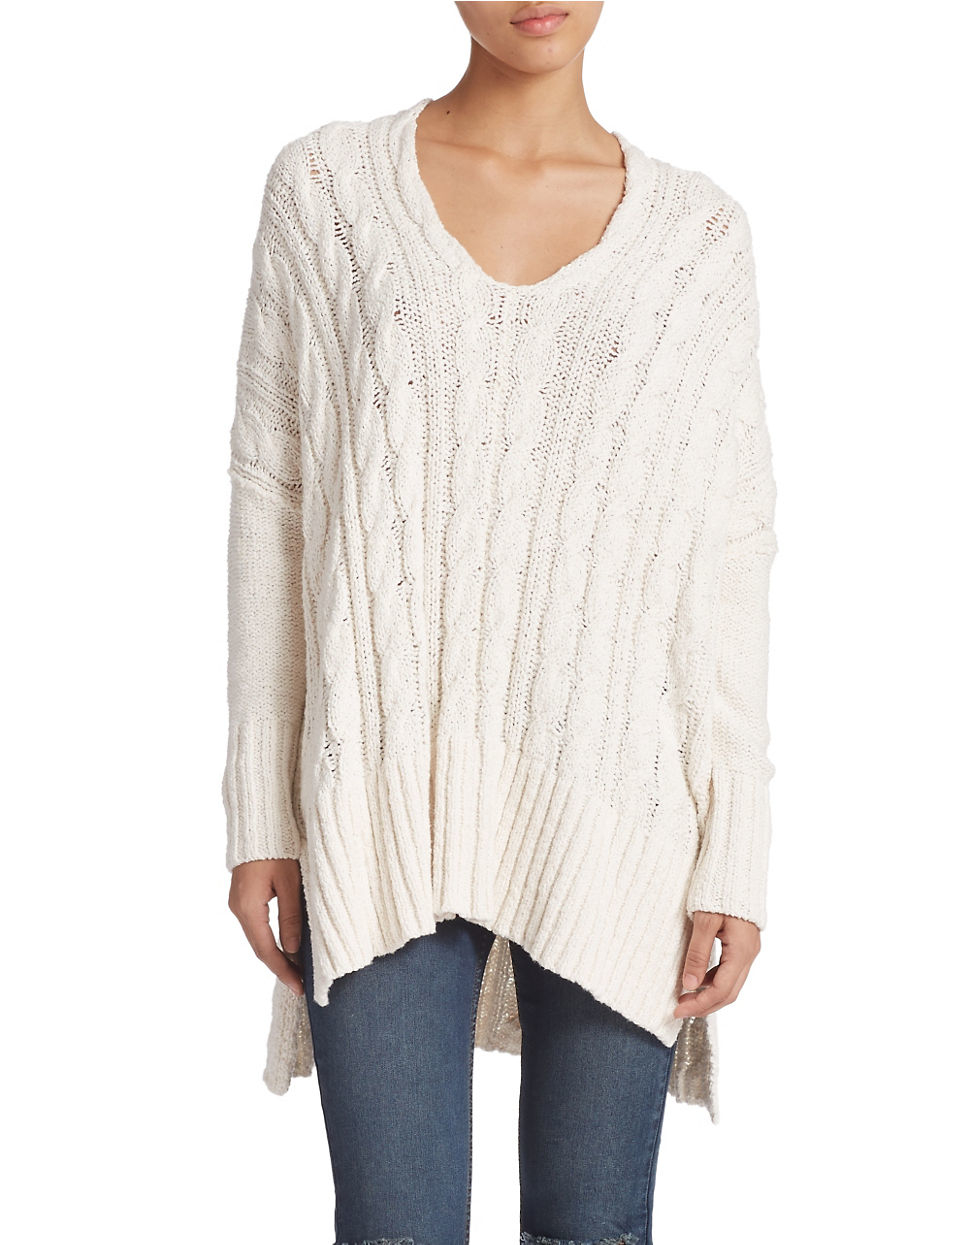 Free people Oversized Cable Knit Sweater in White | Lyst